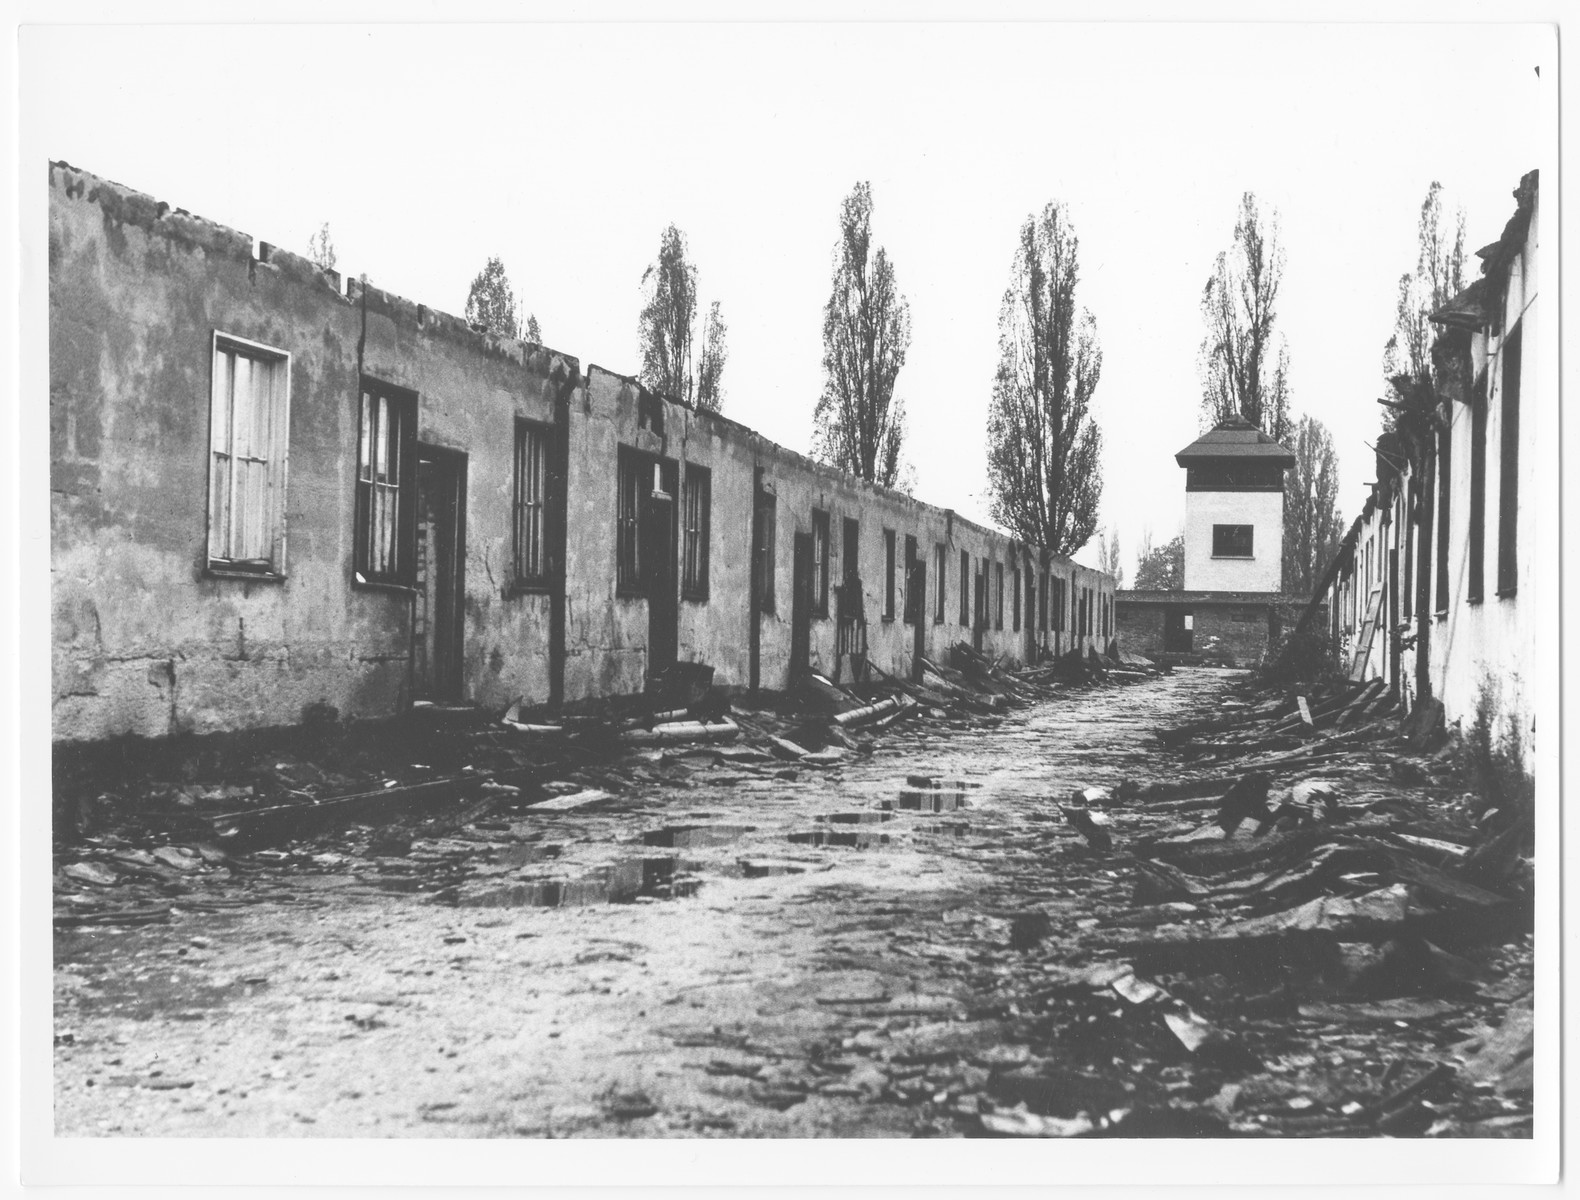 Postwar view of a barrack and watch tower in the Dachau concentration camp.